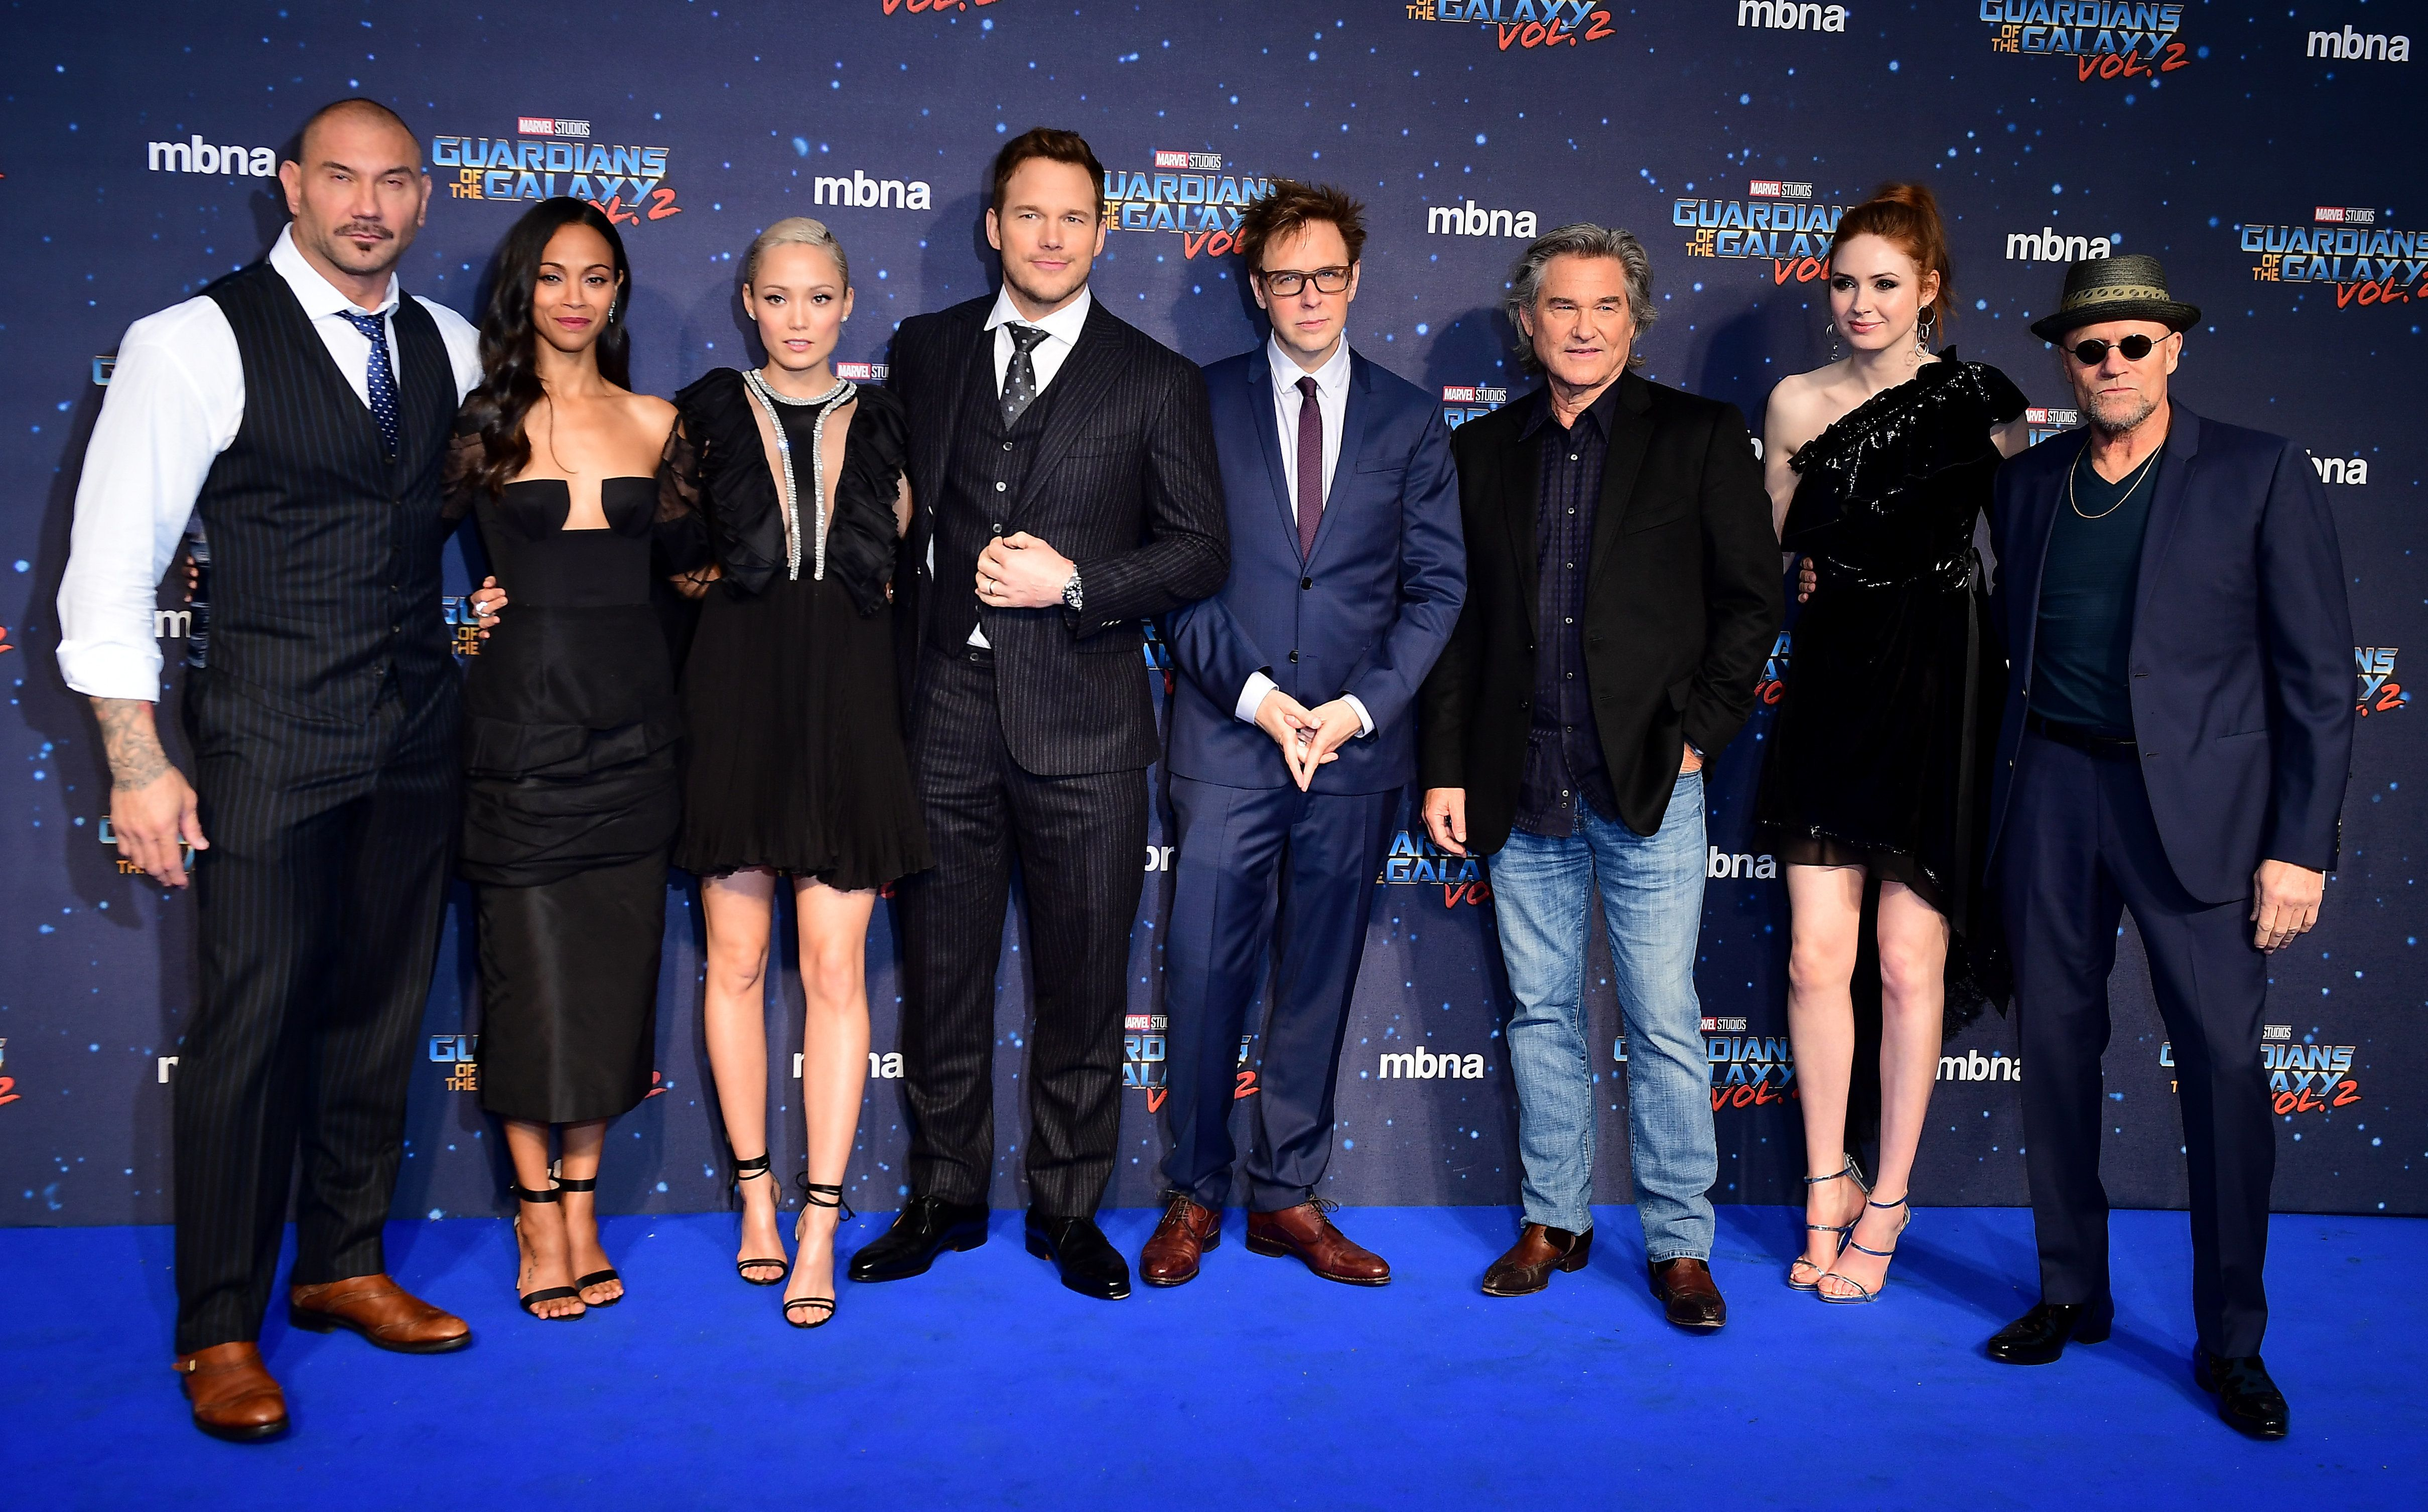 The cast (left to right) Dave Bautista, Zoe Saldana, Pom Klementieff, Chris Pratt, James Gunn, Kurt Russell, Karen Gillan and Michael Rooker attending The European Premiere of Guardians of the Galaxy Vol. 2 held at the Eventim Apollo, London.